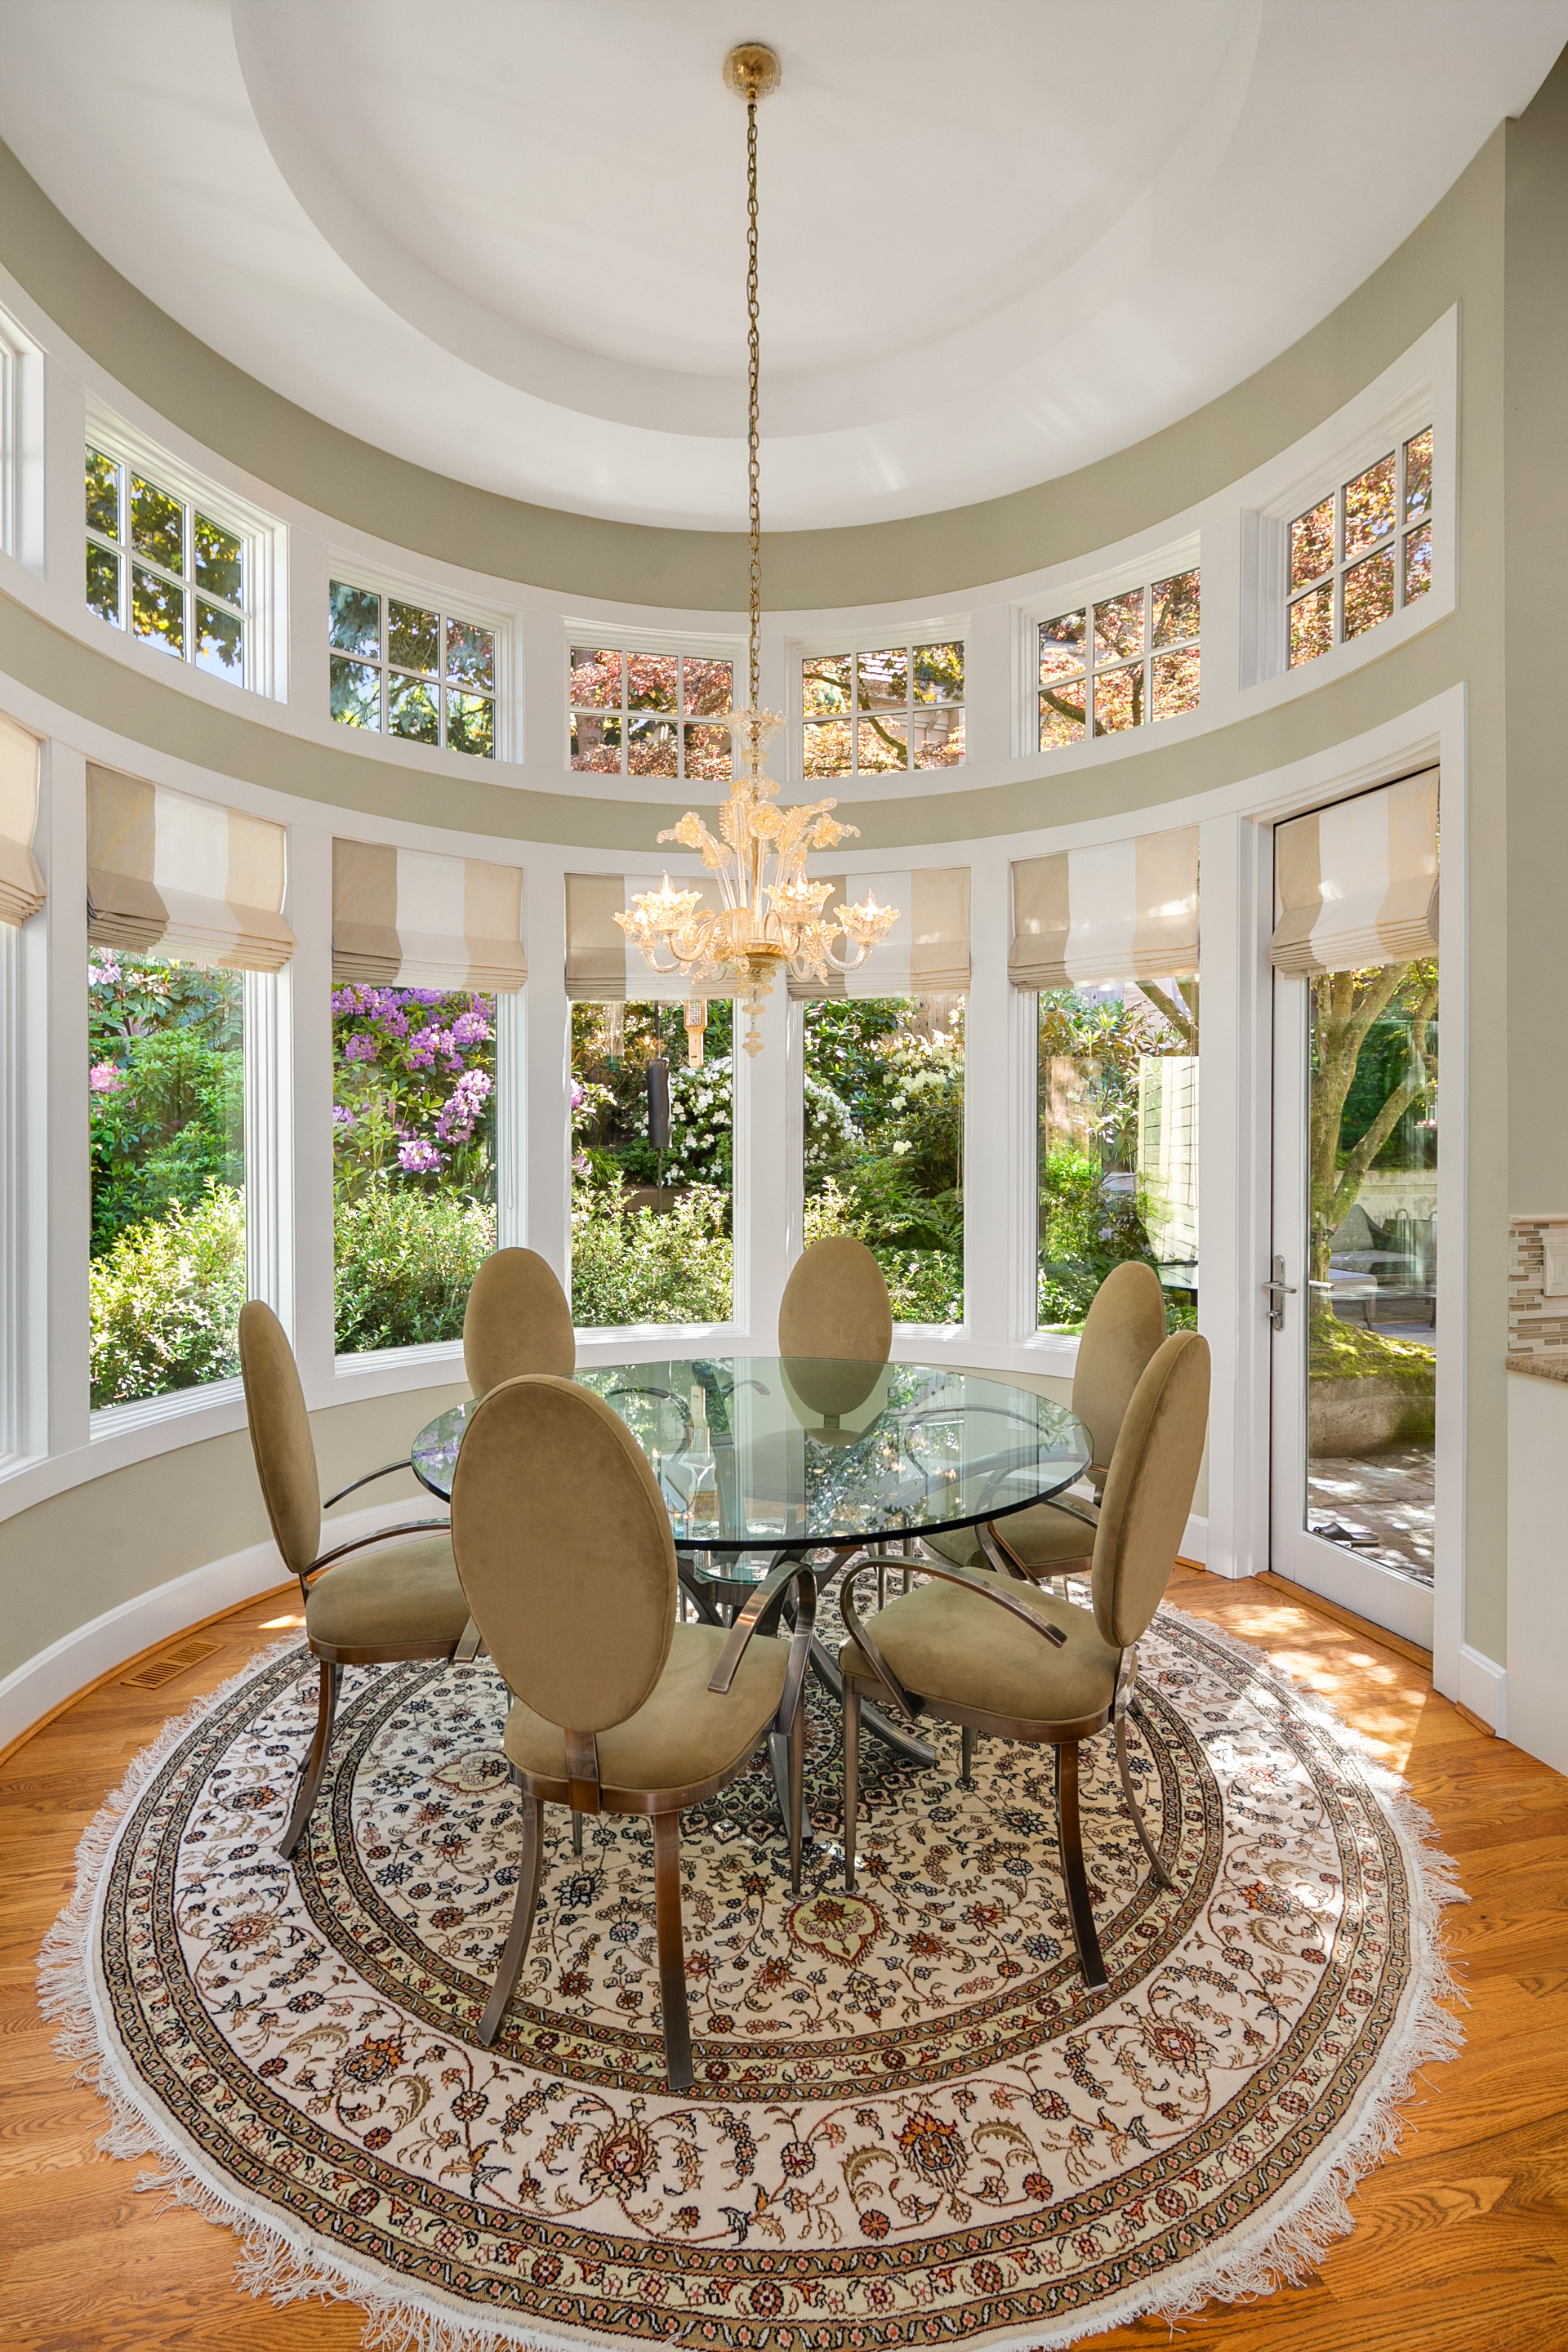 The circular breakfast nook offers a casual eating space with windows overlooking the gardens & access to the back patio.